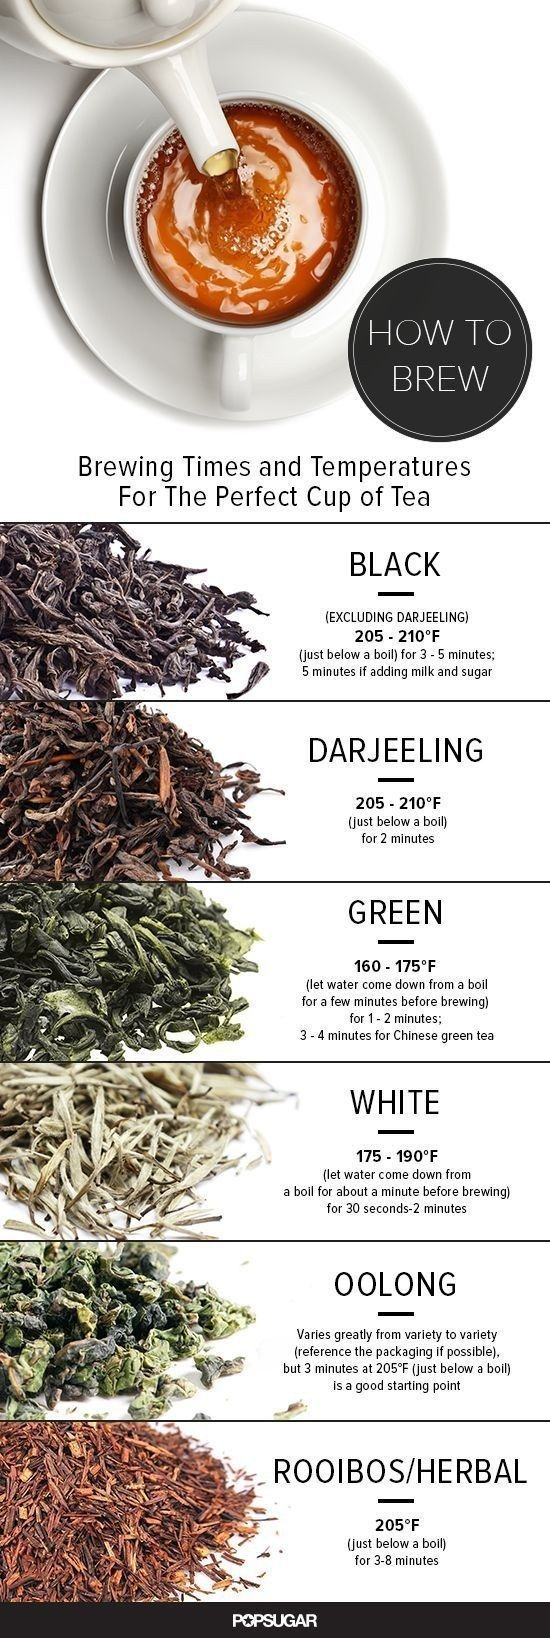 For the ideal cup of tea: | 17 Kitchen Cheat Sheets You Should Know About